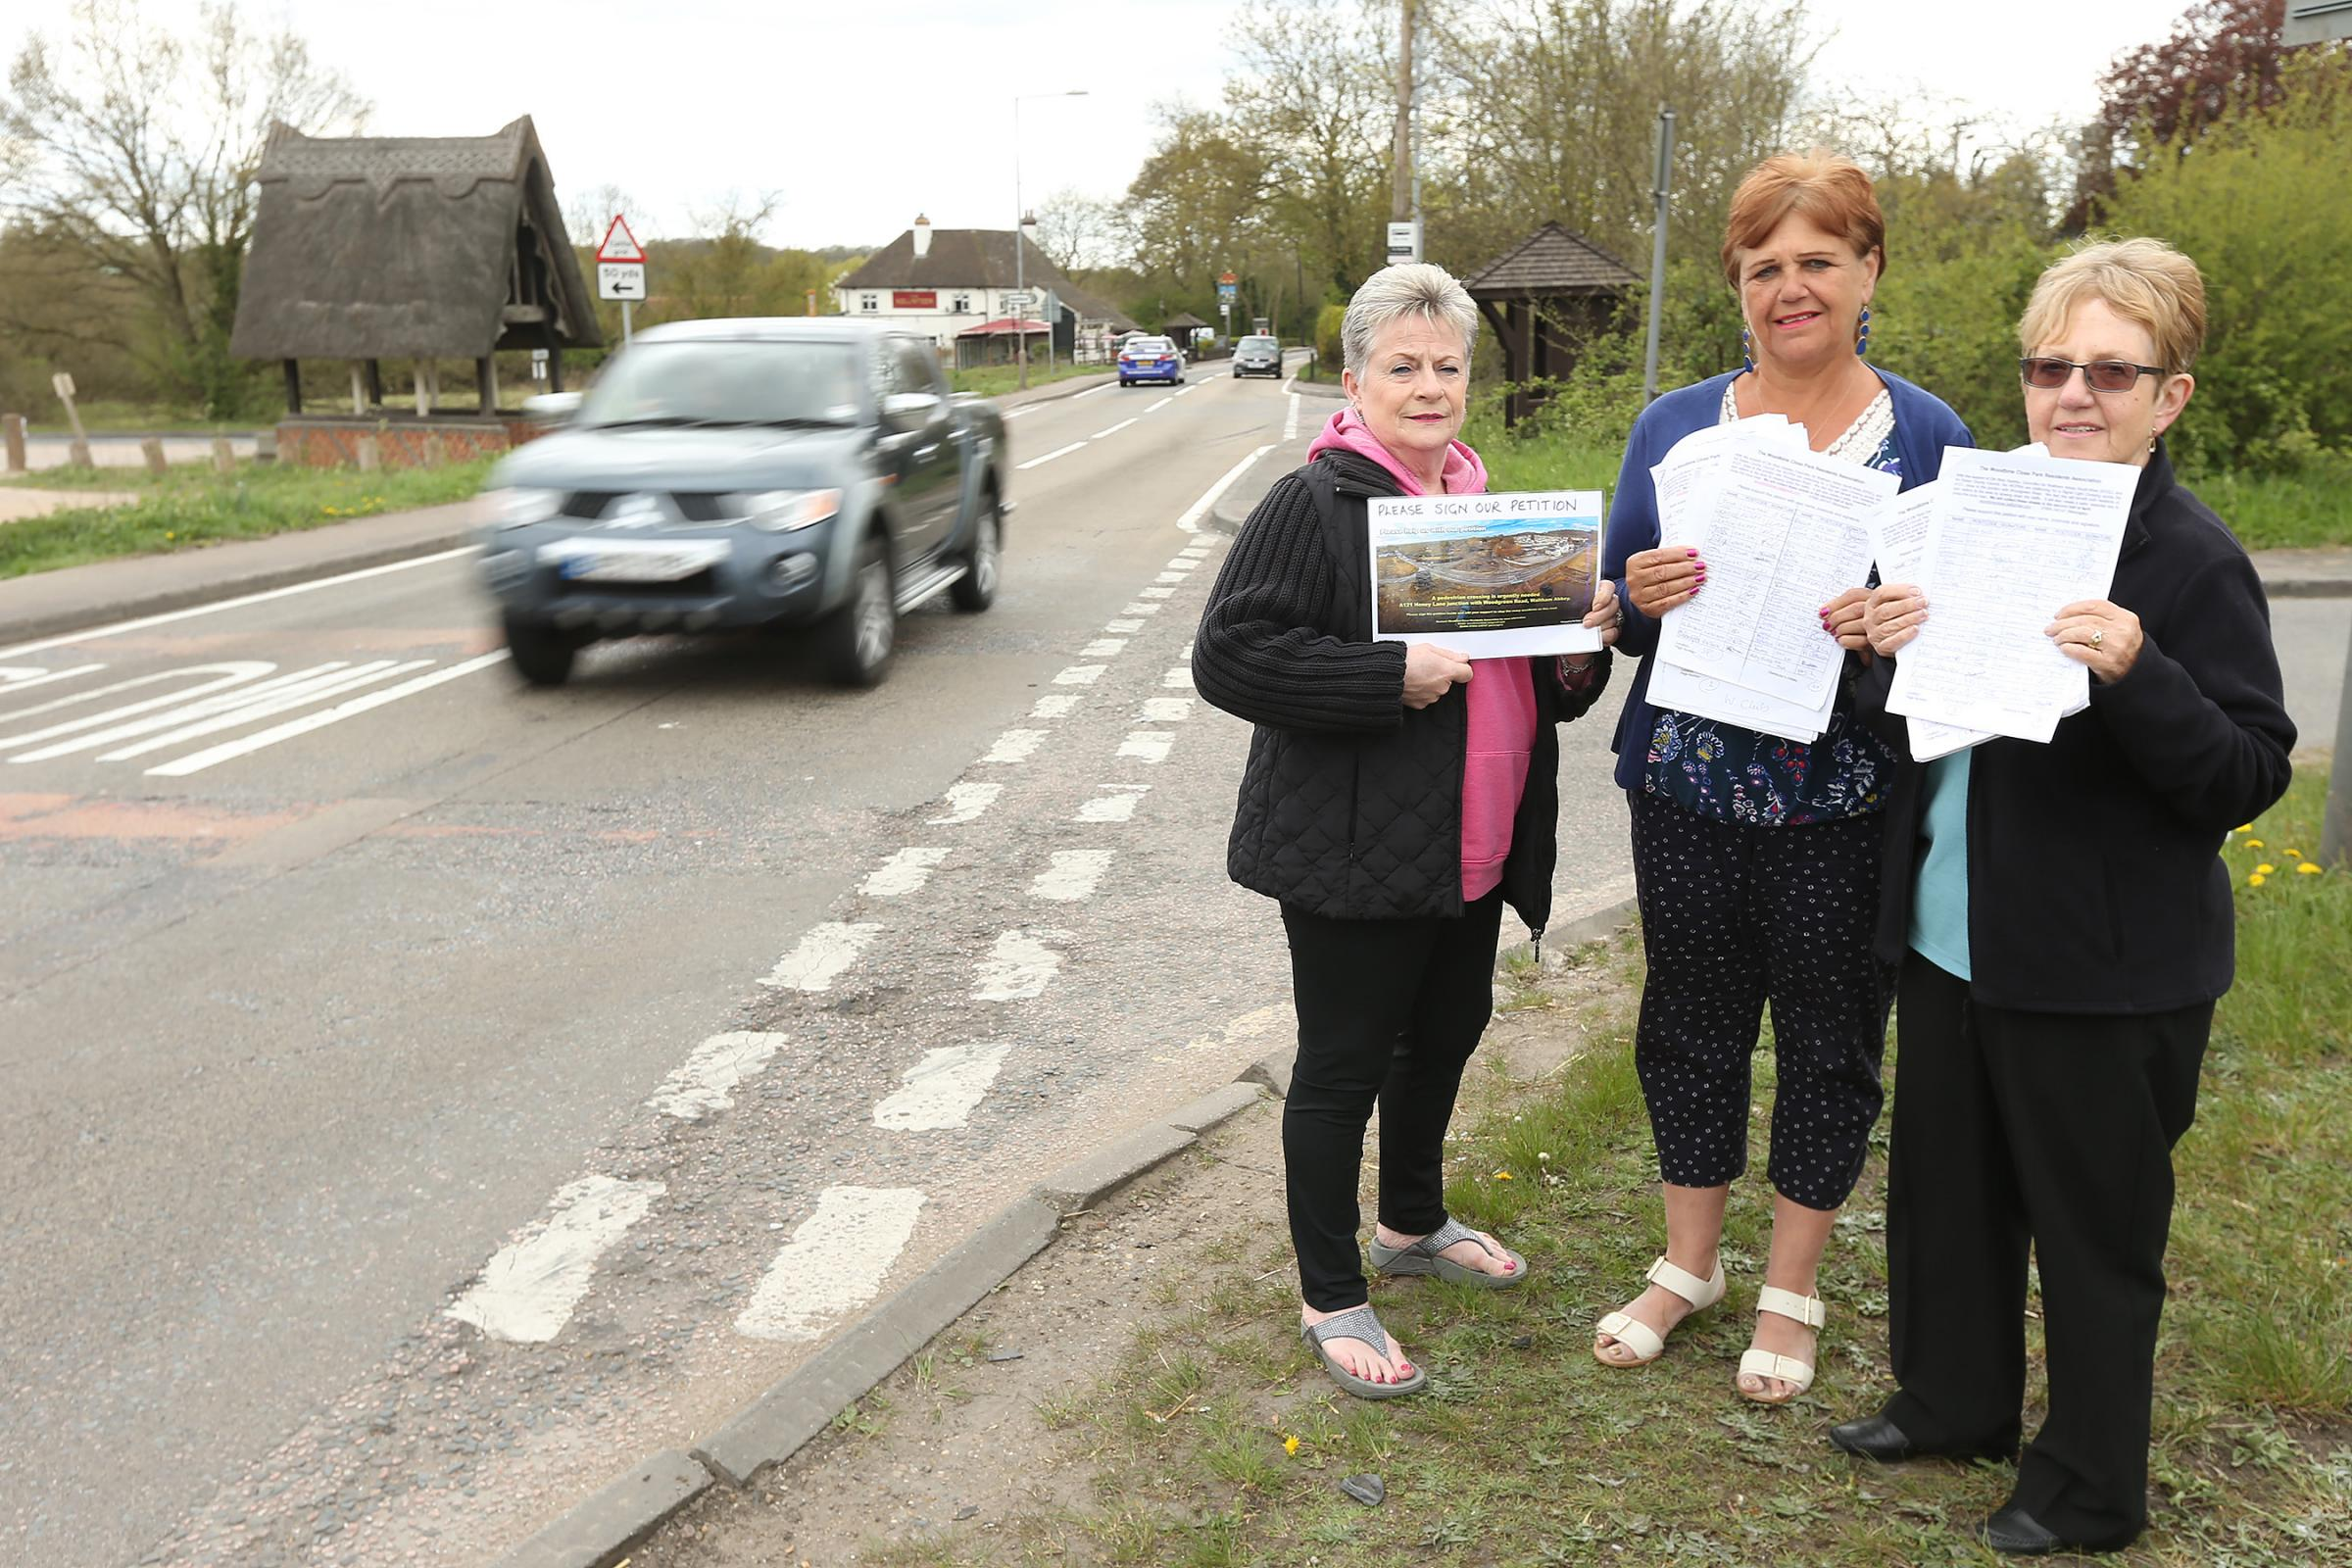 Jeanette Jones, Jane Trite and Tessa First have started a petition for a road crossing on Honey Lane